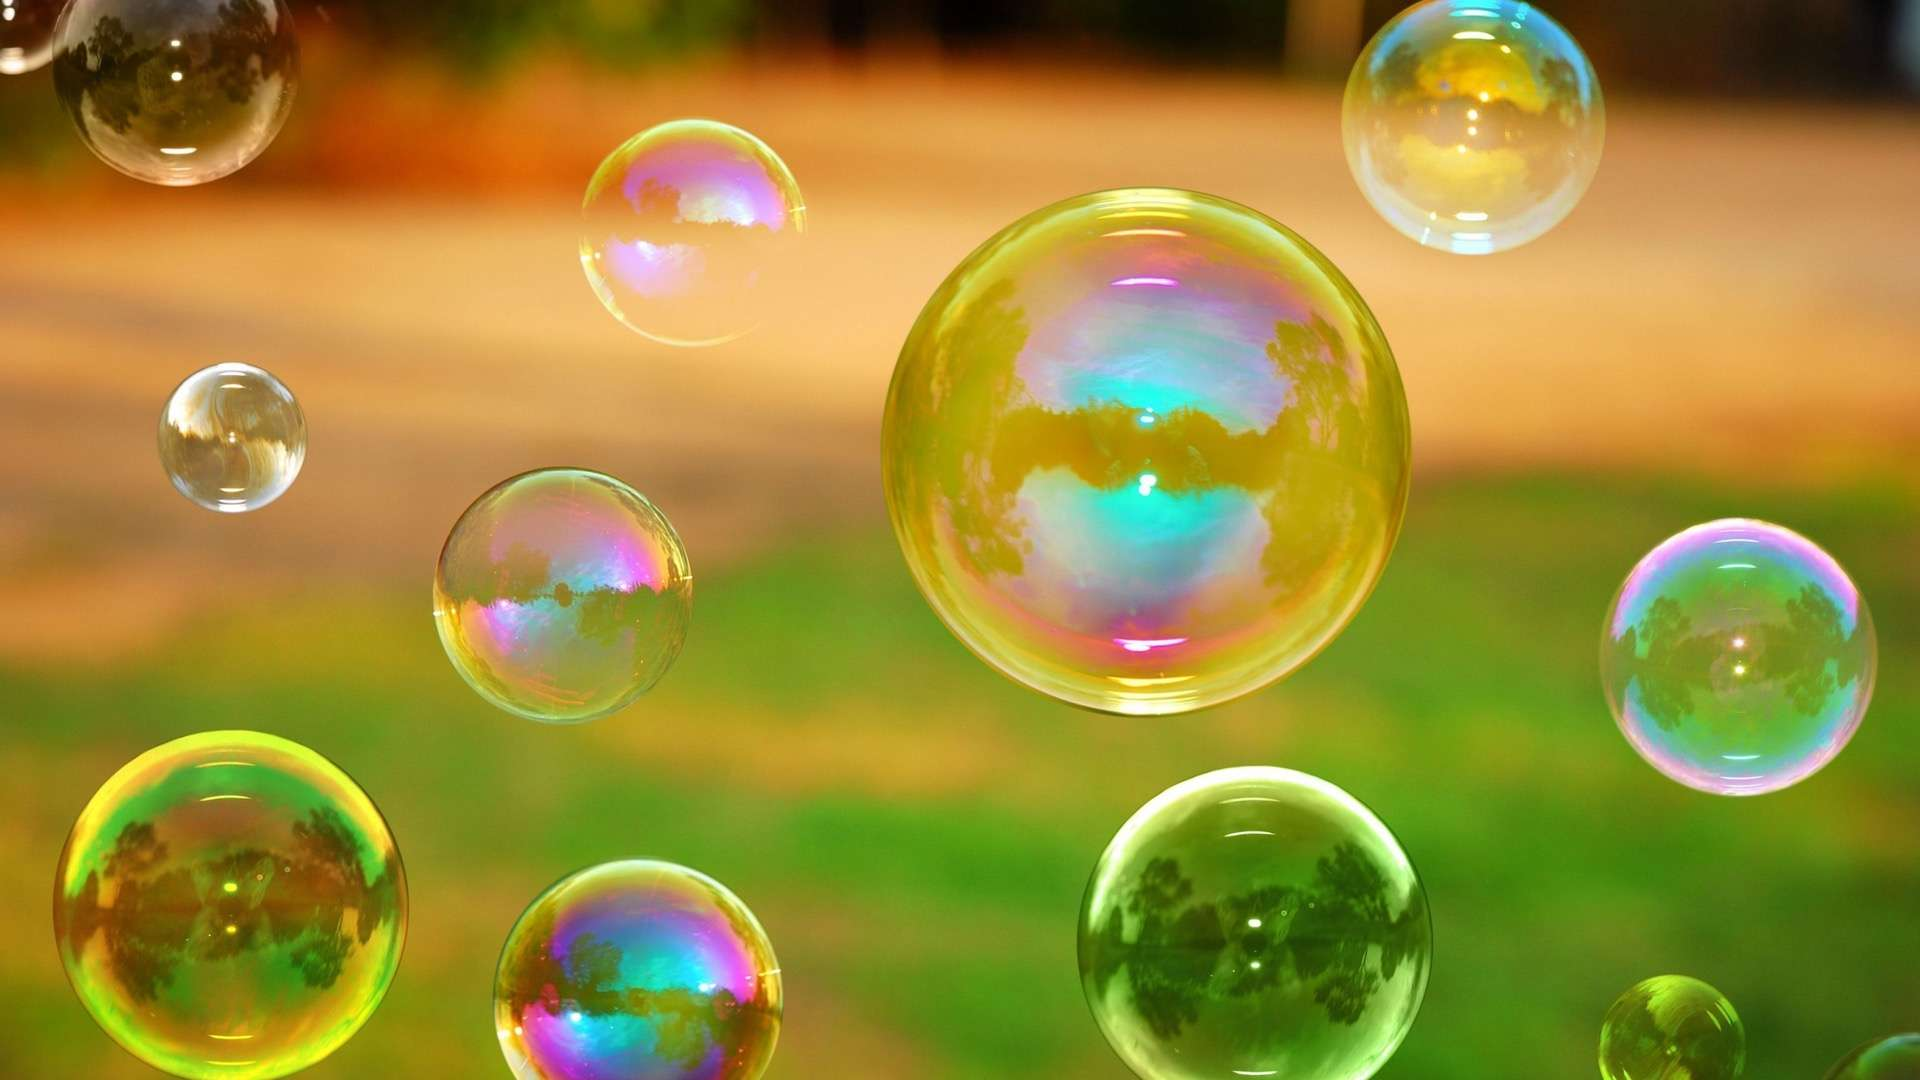 Soap Bubbles Wallpapers Phone 1920x1080 Lil Dog Ranch